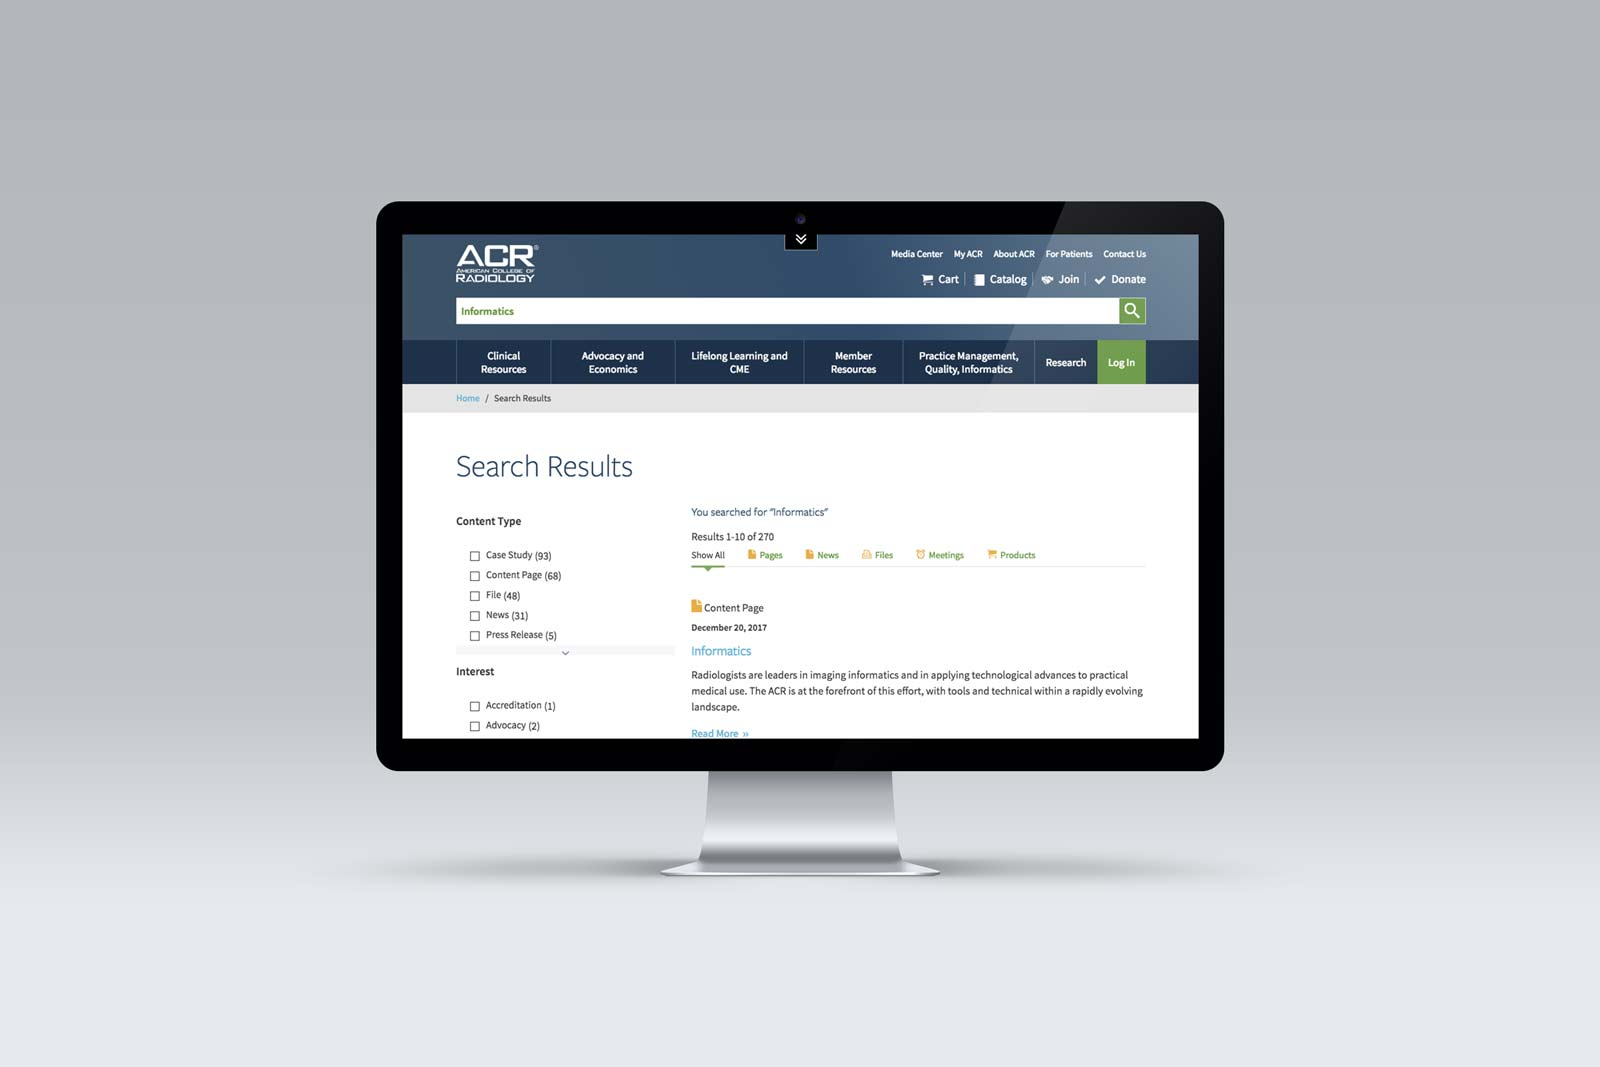 ACR's site-wide search